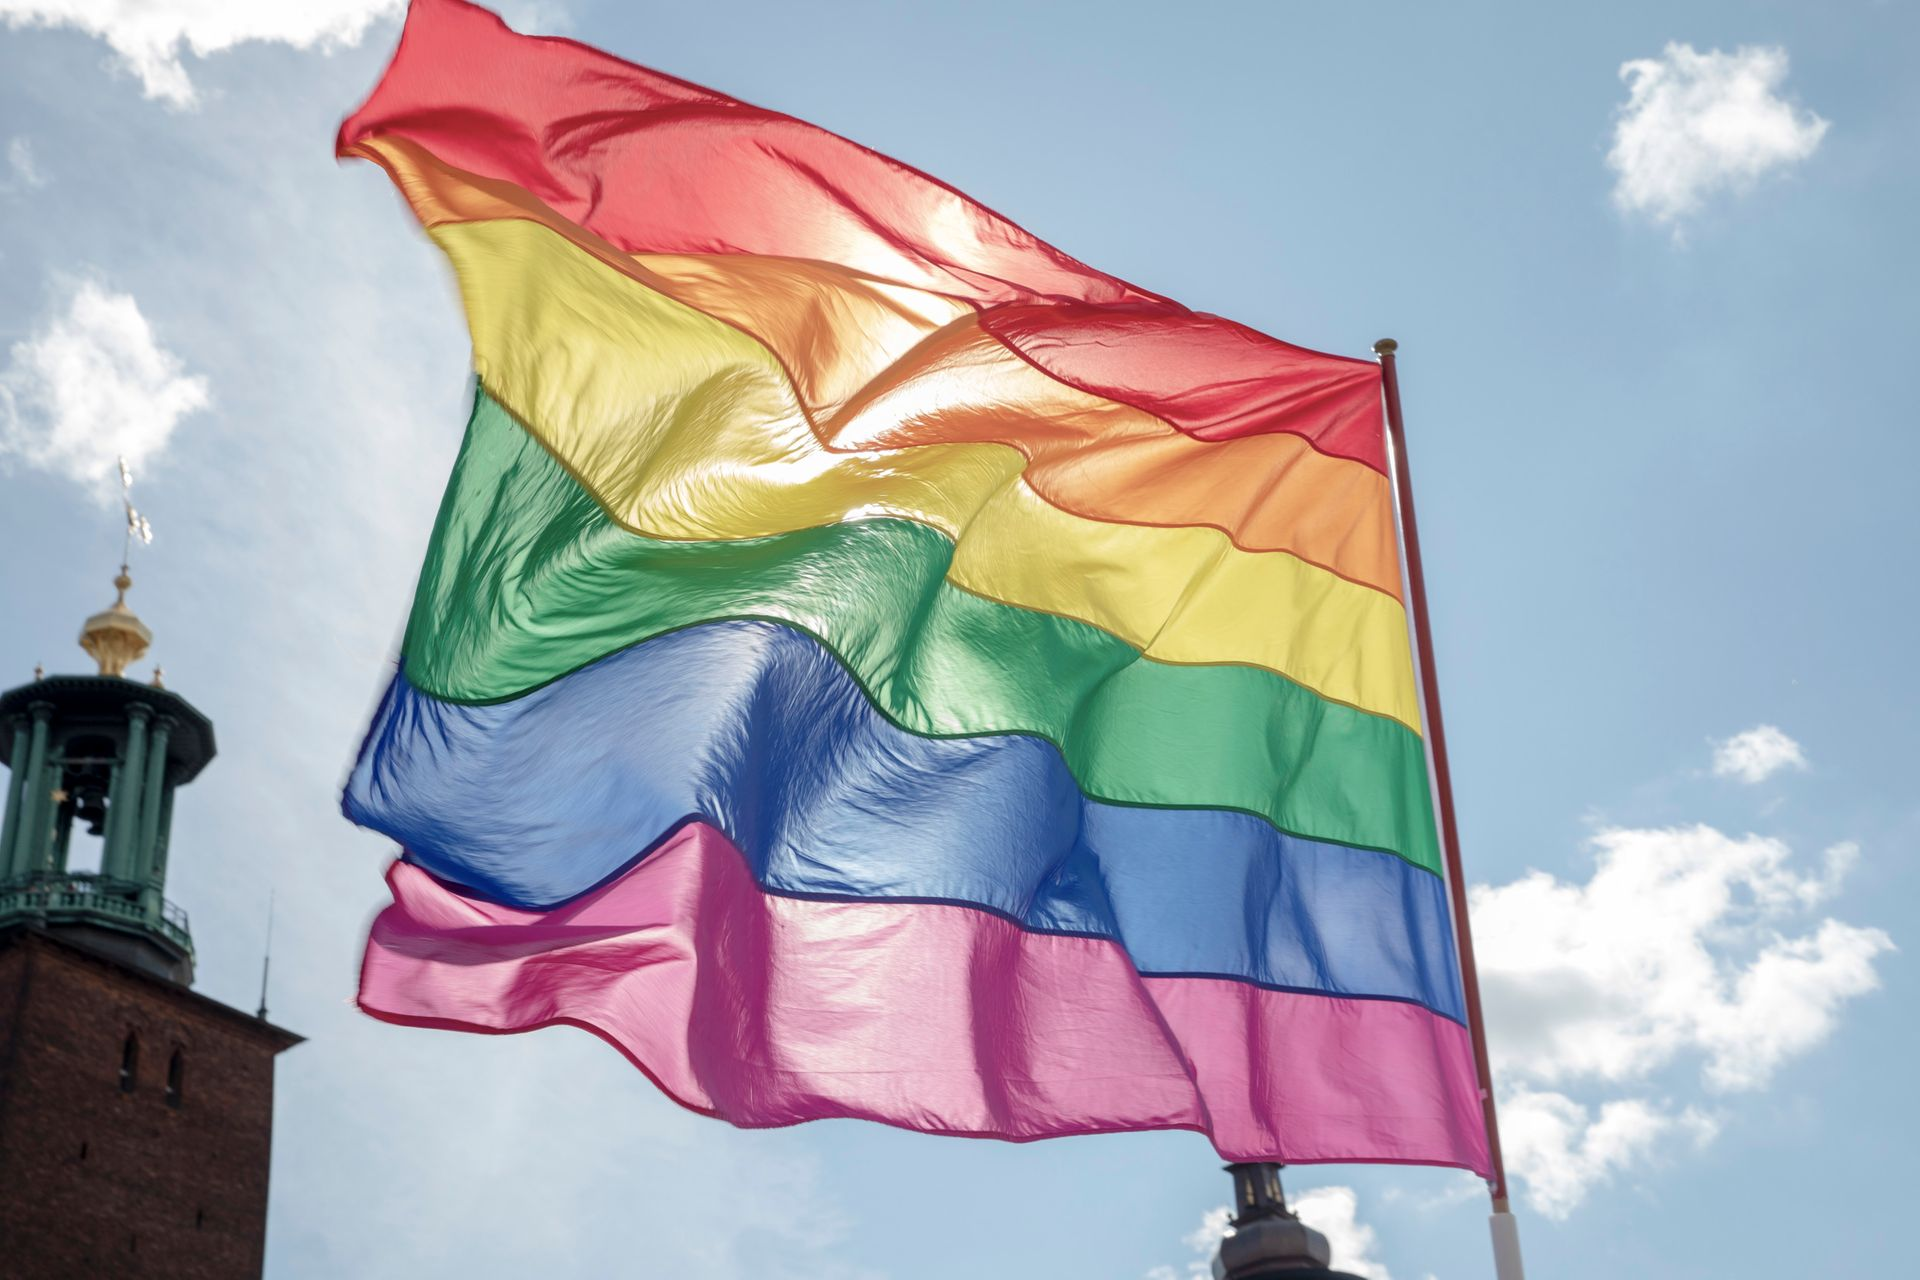 A rainbow flag flutters in the wind. The tower of Stockholm city hall in the background.